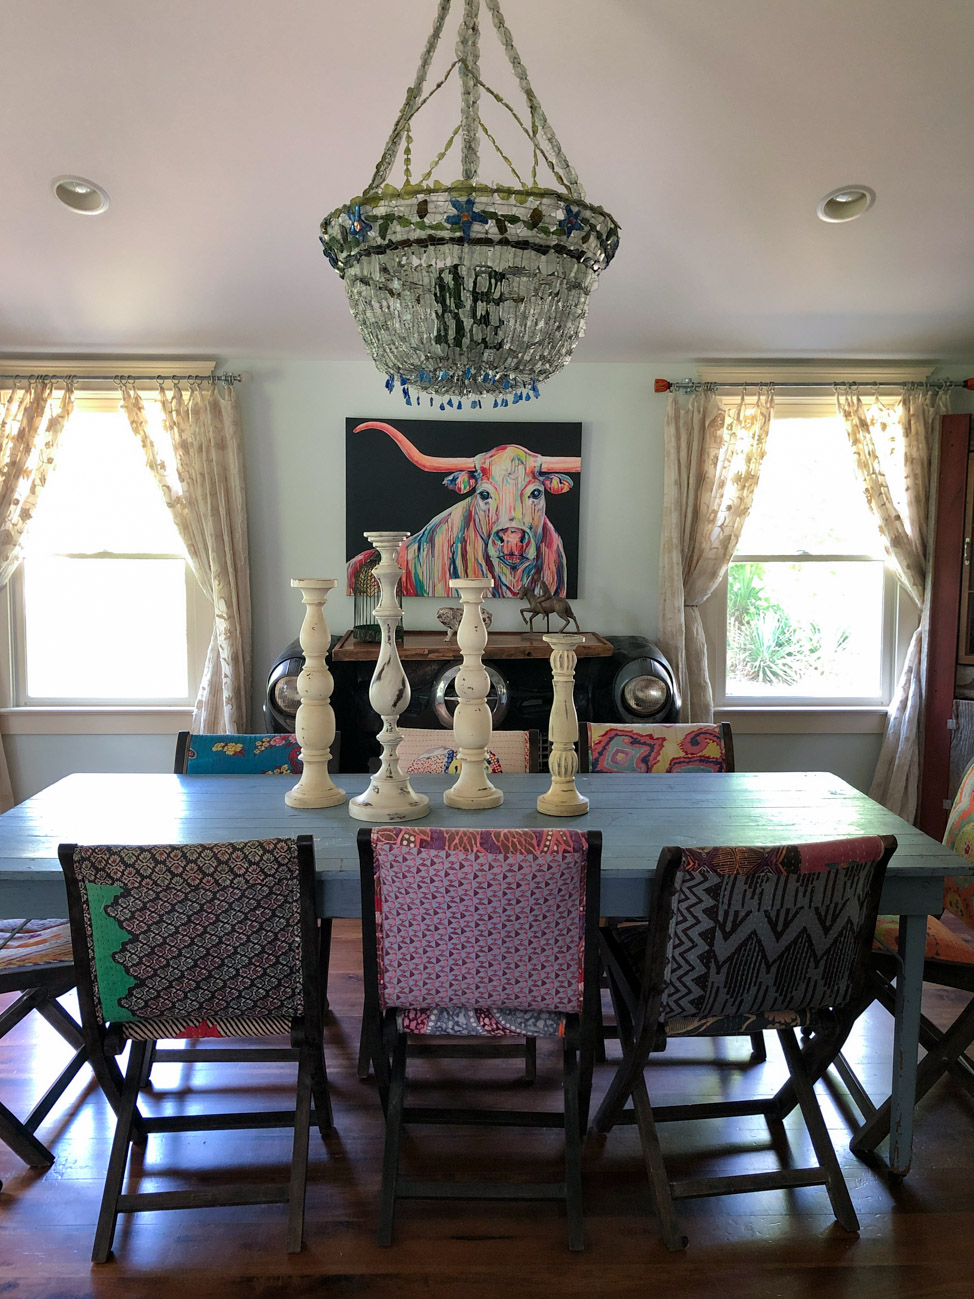 Where to Stay in Leiper's Fork, Tennessee: Pot 'N Kettle Cottages